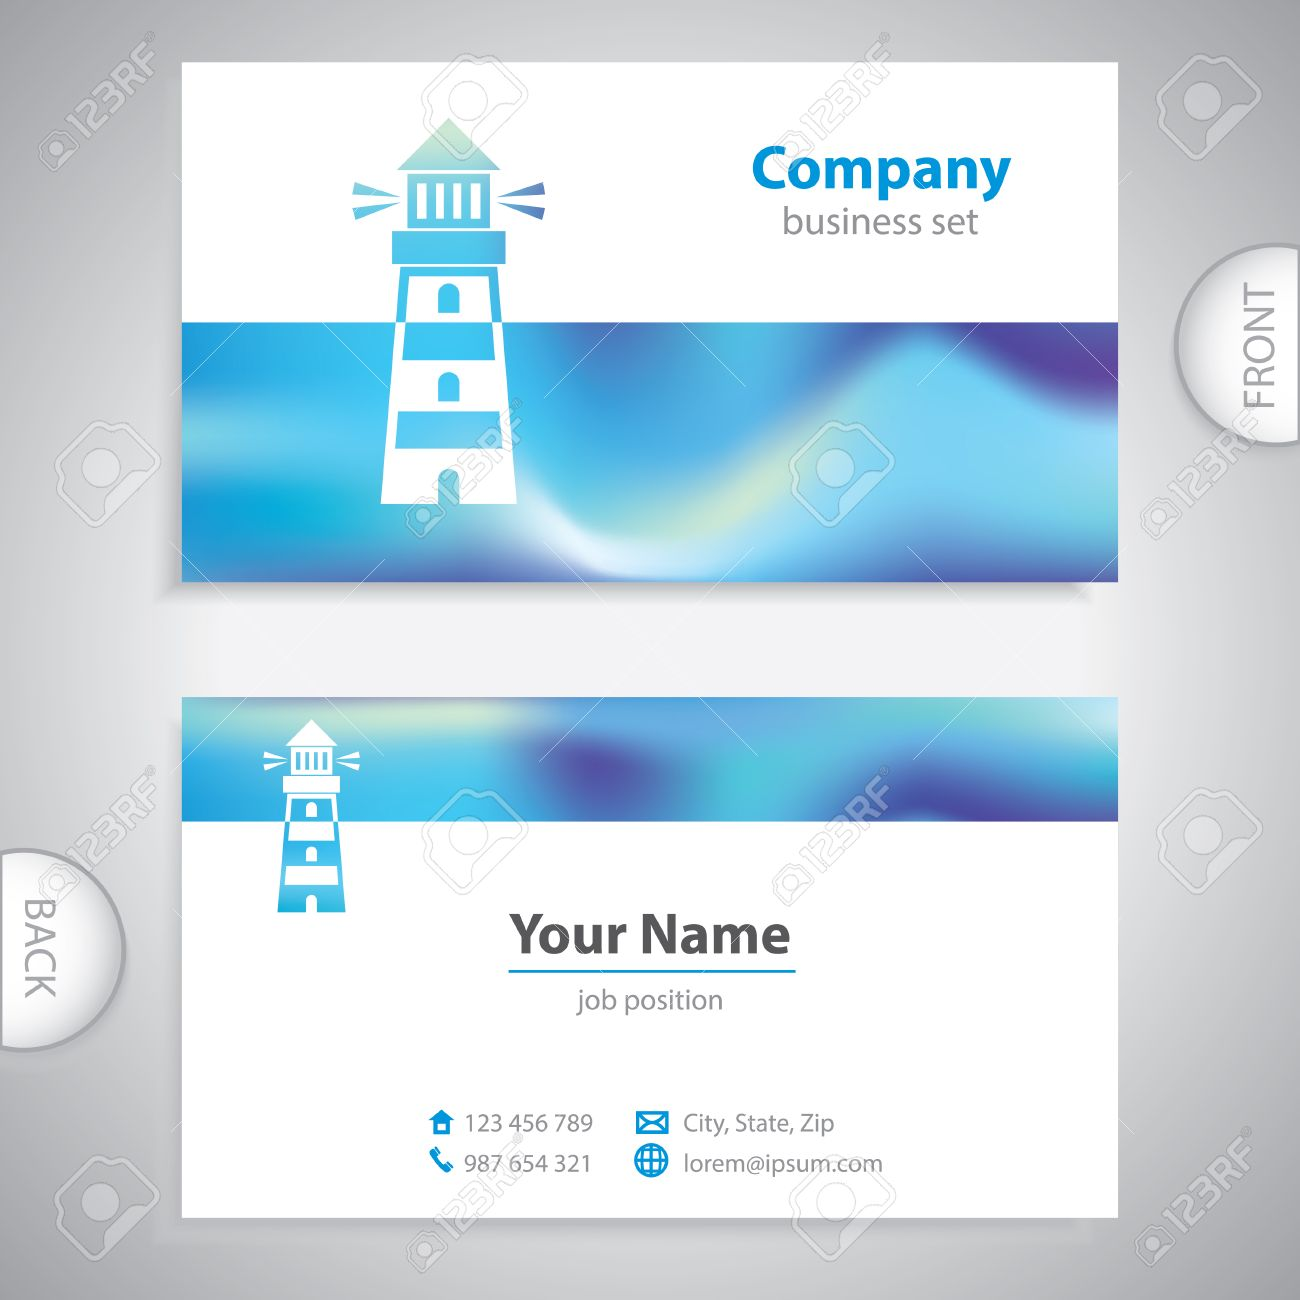 Business card lighthouse icon signaling signs symbol sea business card lighthouse icon signaling signs symbol sea company presentations stock vector colourmoves